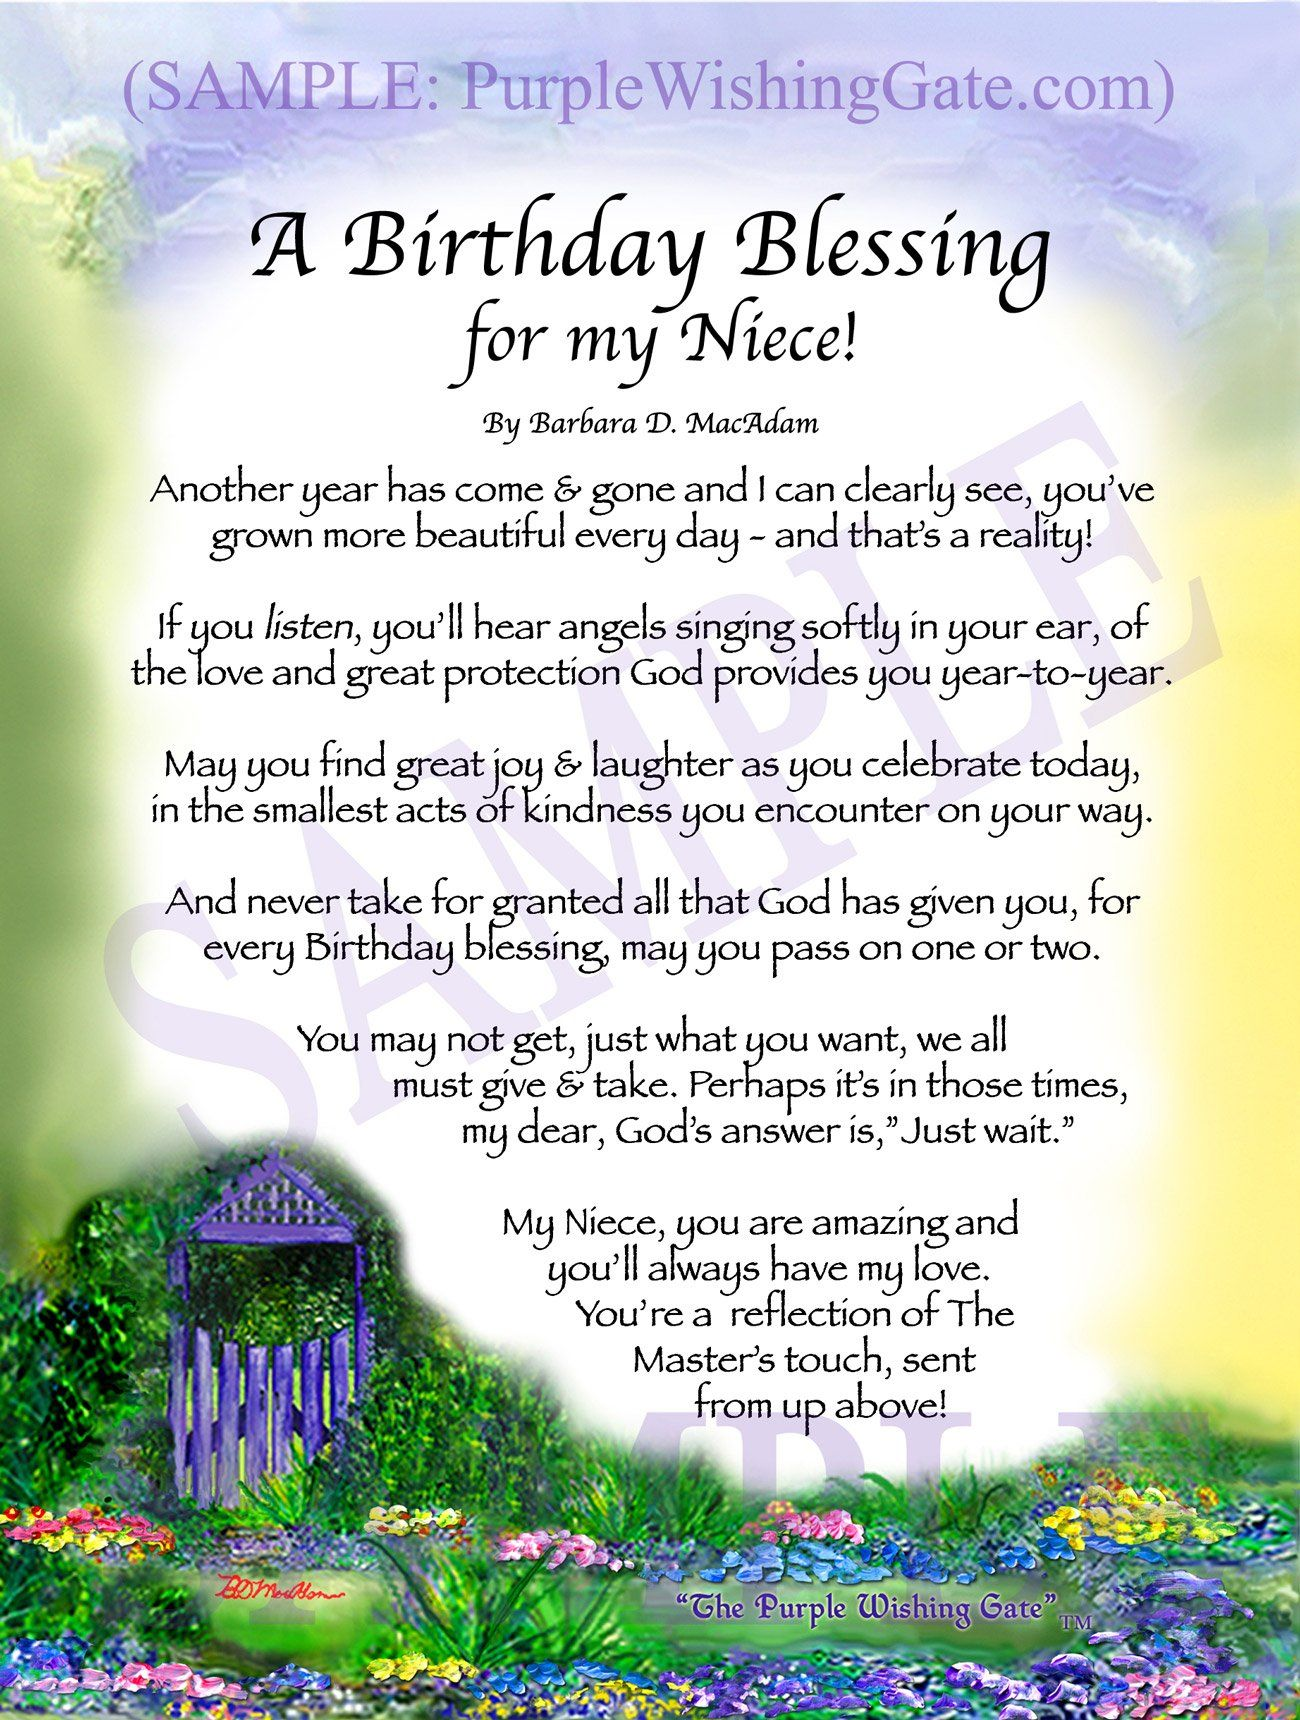 A Nieces Birthday Blessing Framed Personalized Gift Purplewishinggate Com